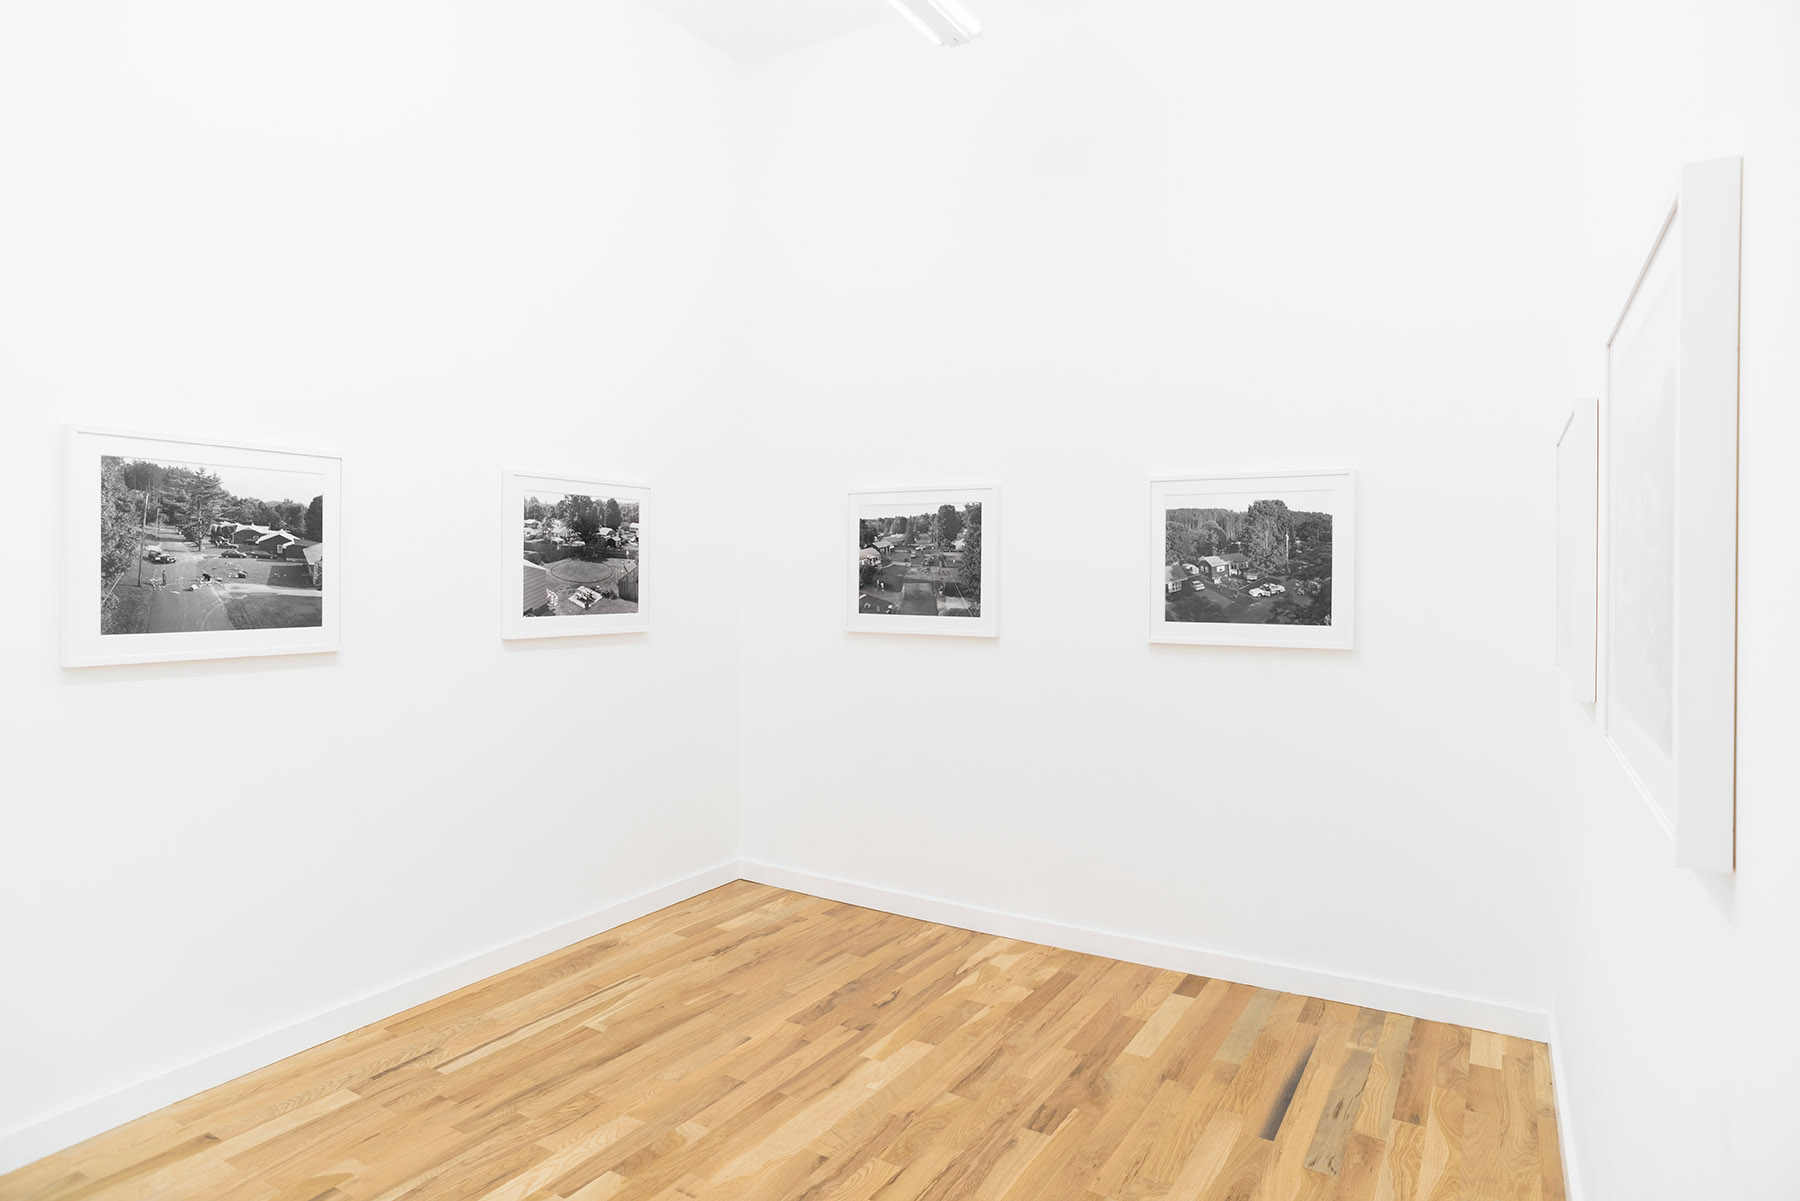 Installation view at DOCUMENT